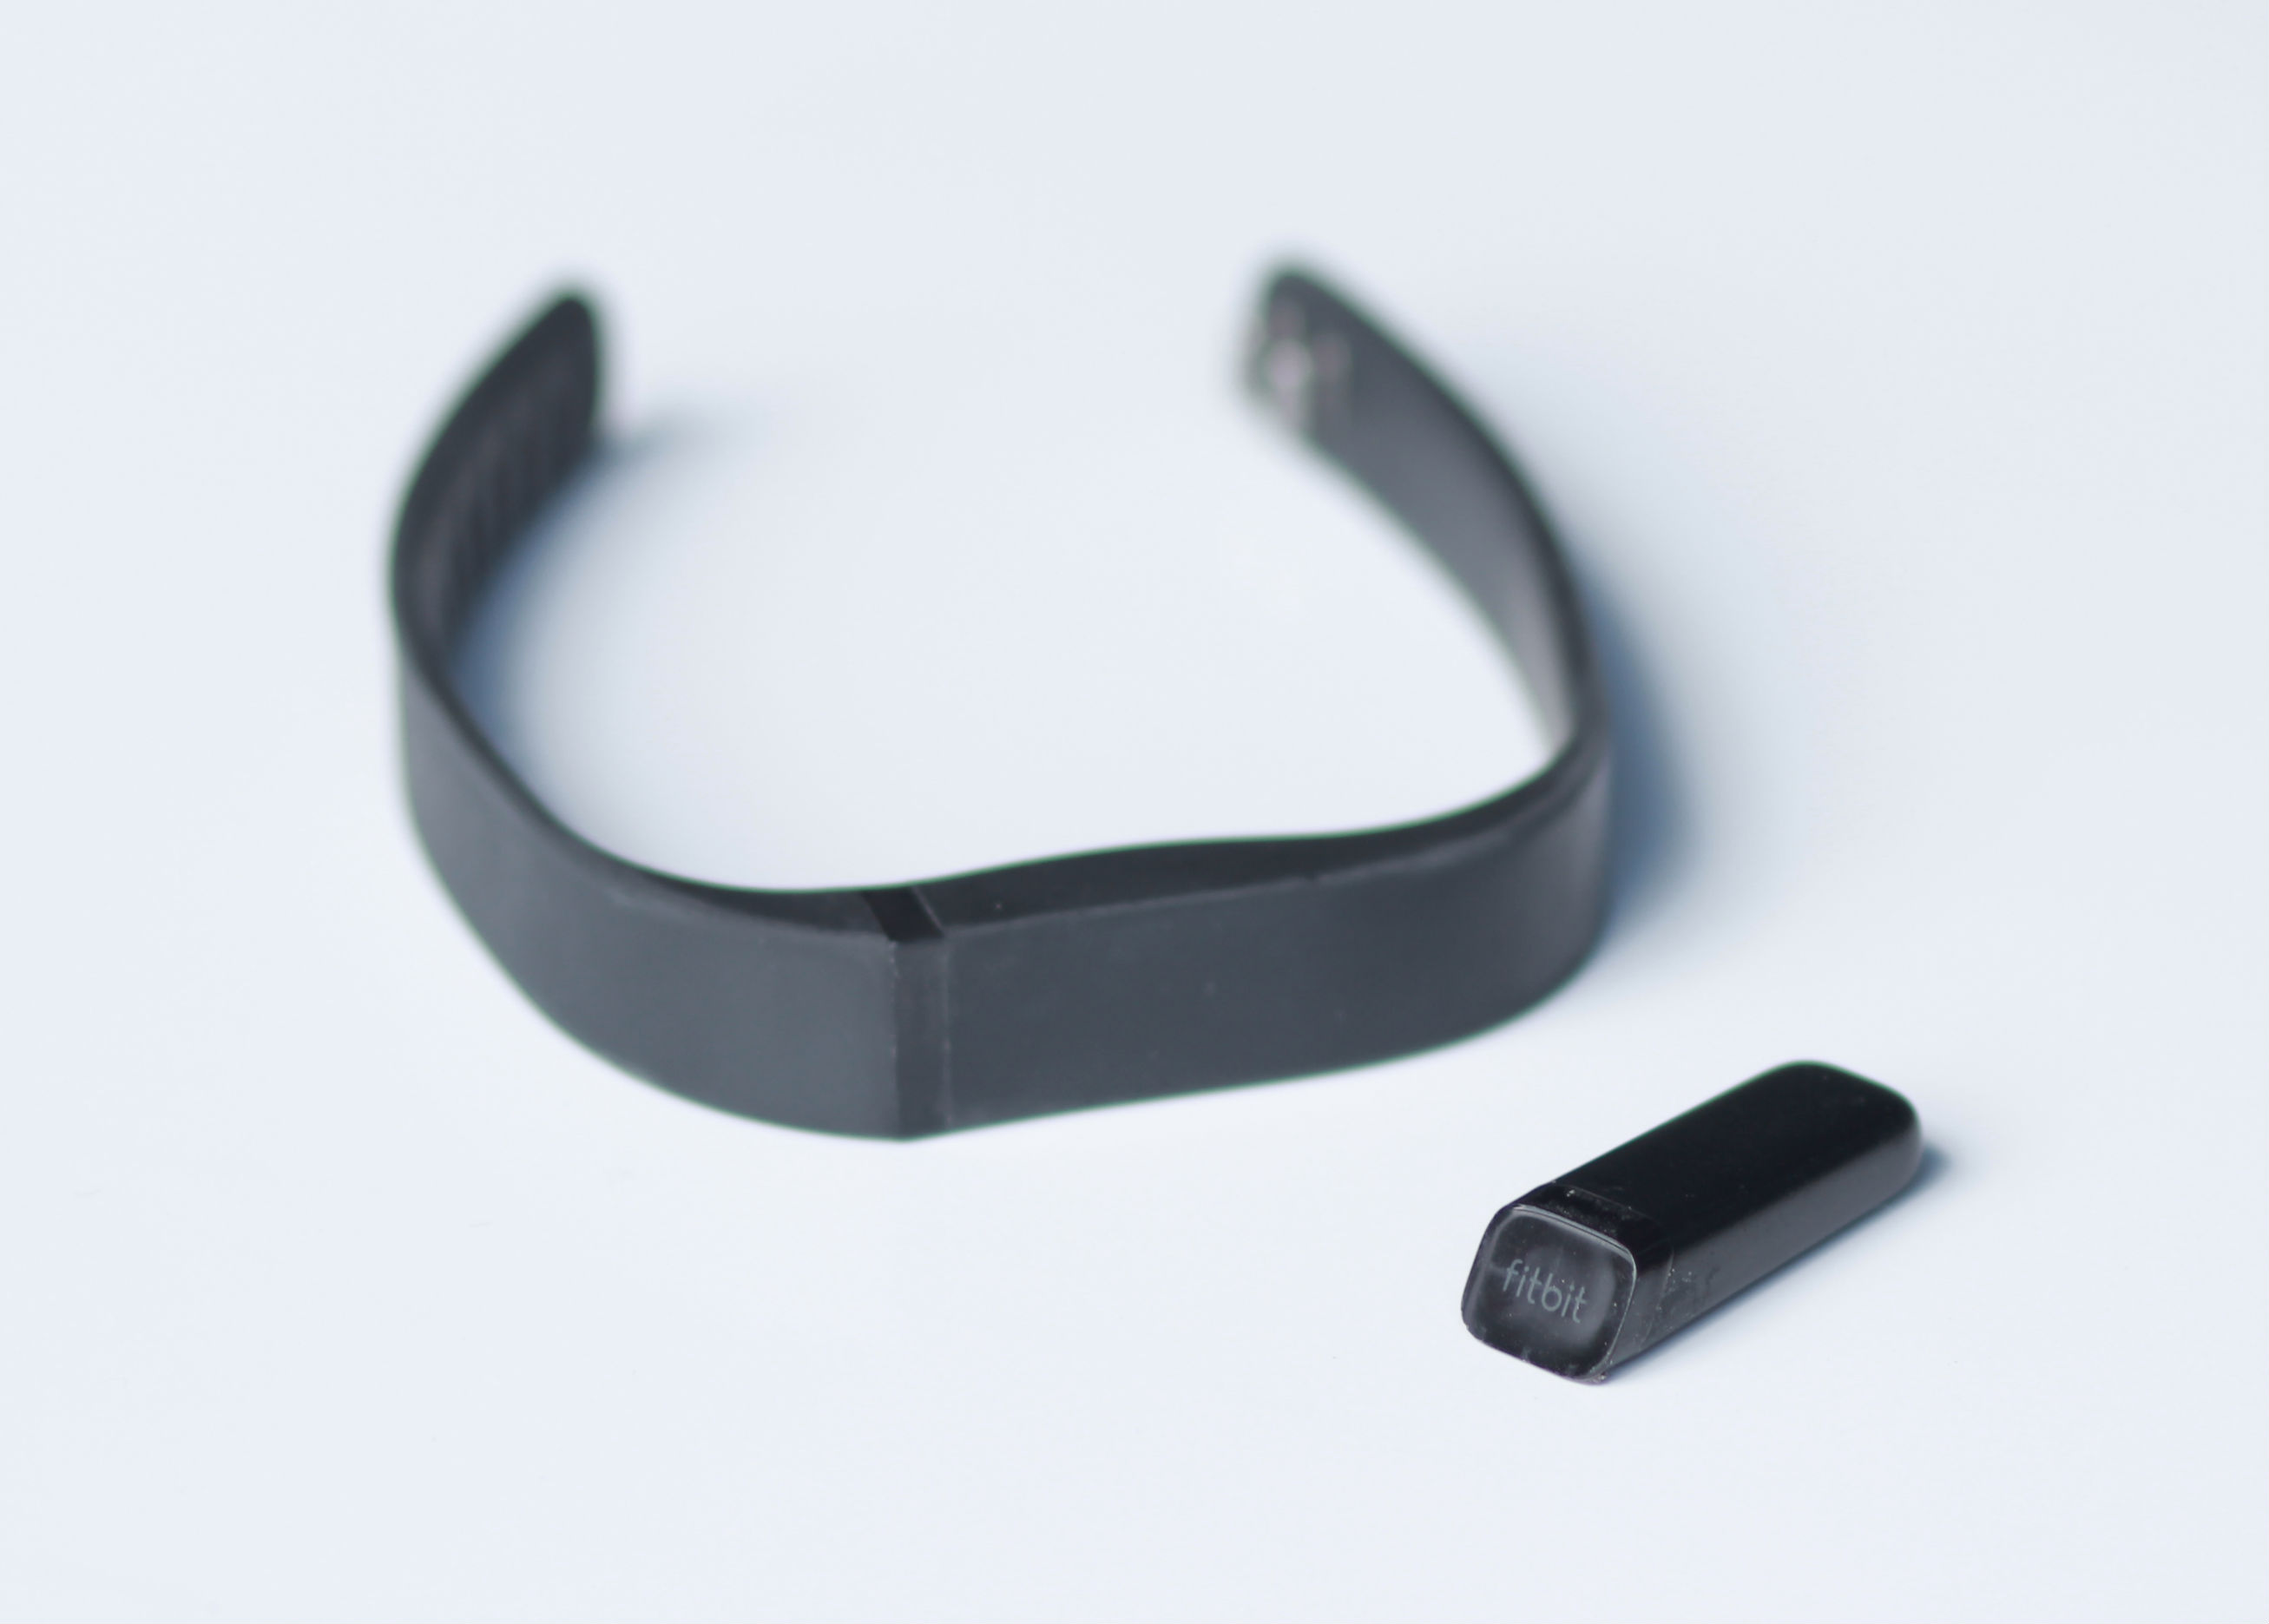 How fit is that Fitbit? - The Berkeley Science Review